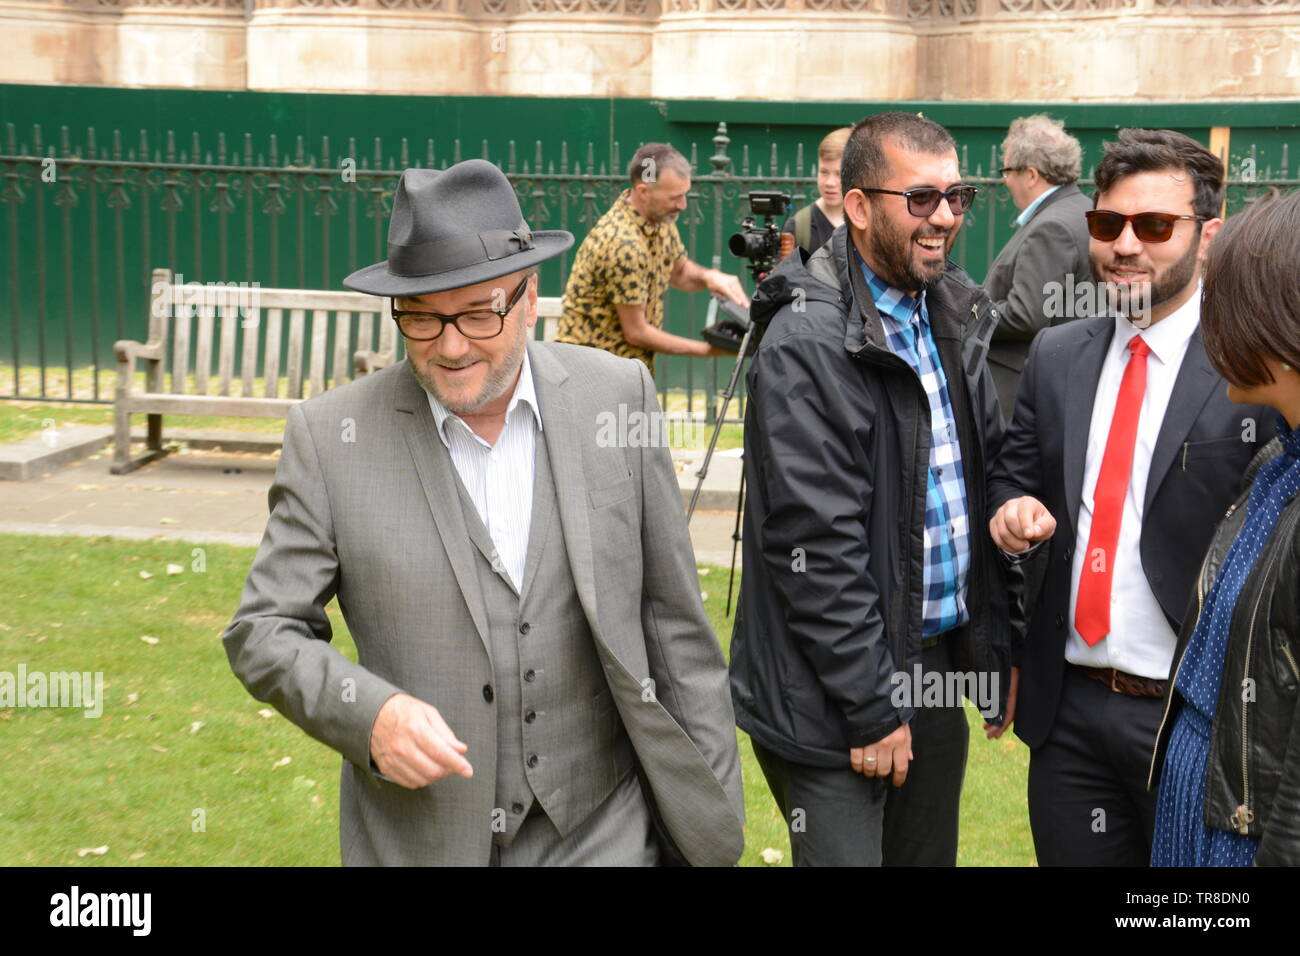 George Galloway, Old Place Yard, Westminster 30th May 2019 politely & with grace refuses a spur of the moment request to speak at a nearby PTM demo. - Stock Image